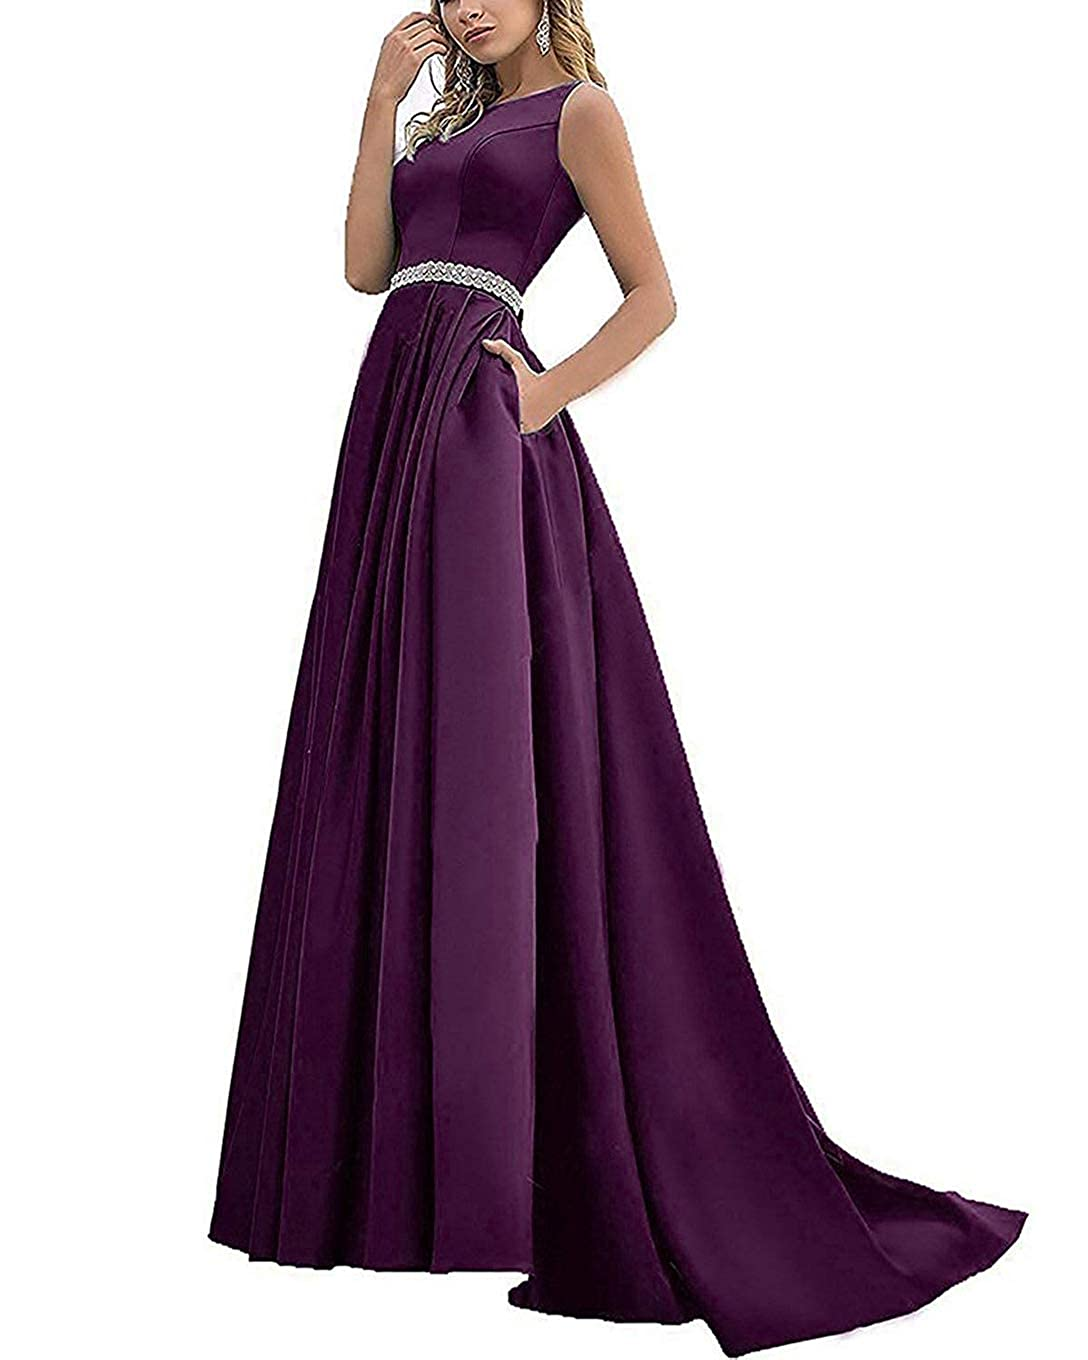 Grape Beaded Satin Prom Dresses Long with Pockets Jewel Neckline Princess Ball Gown